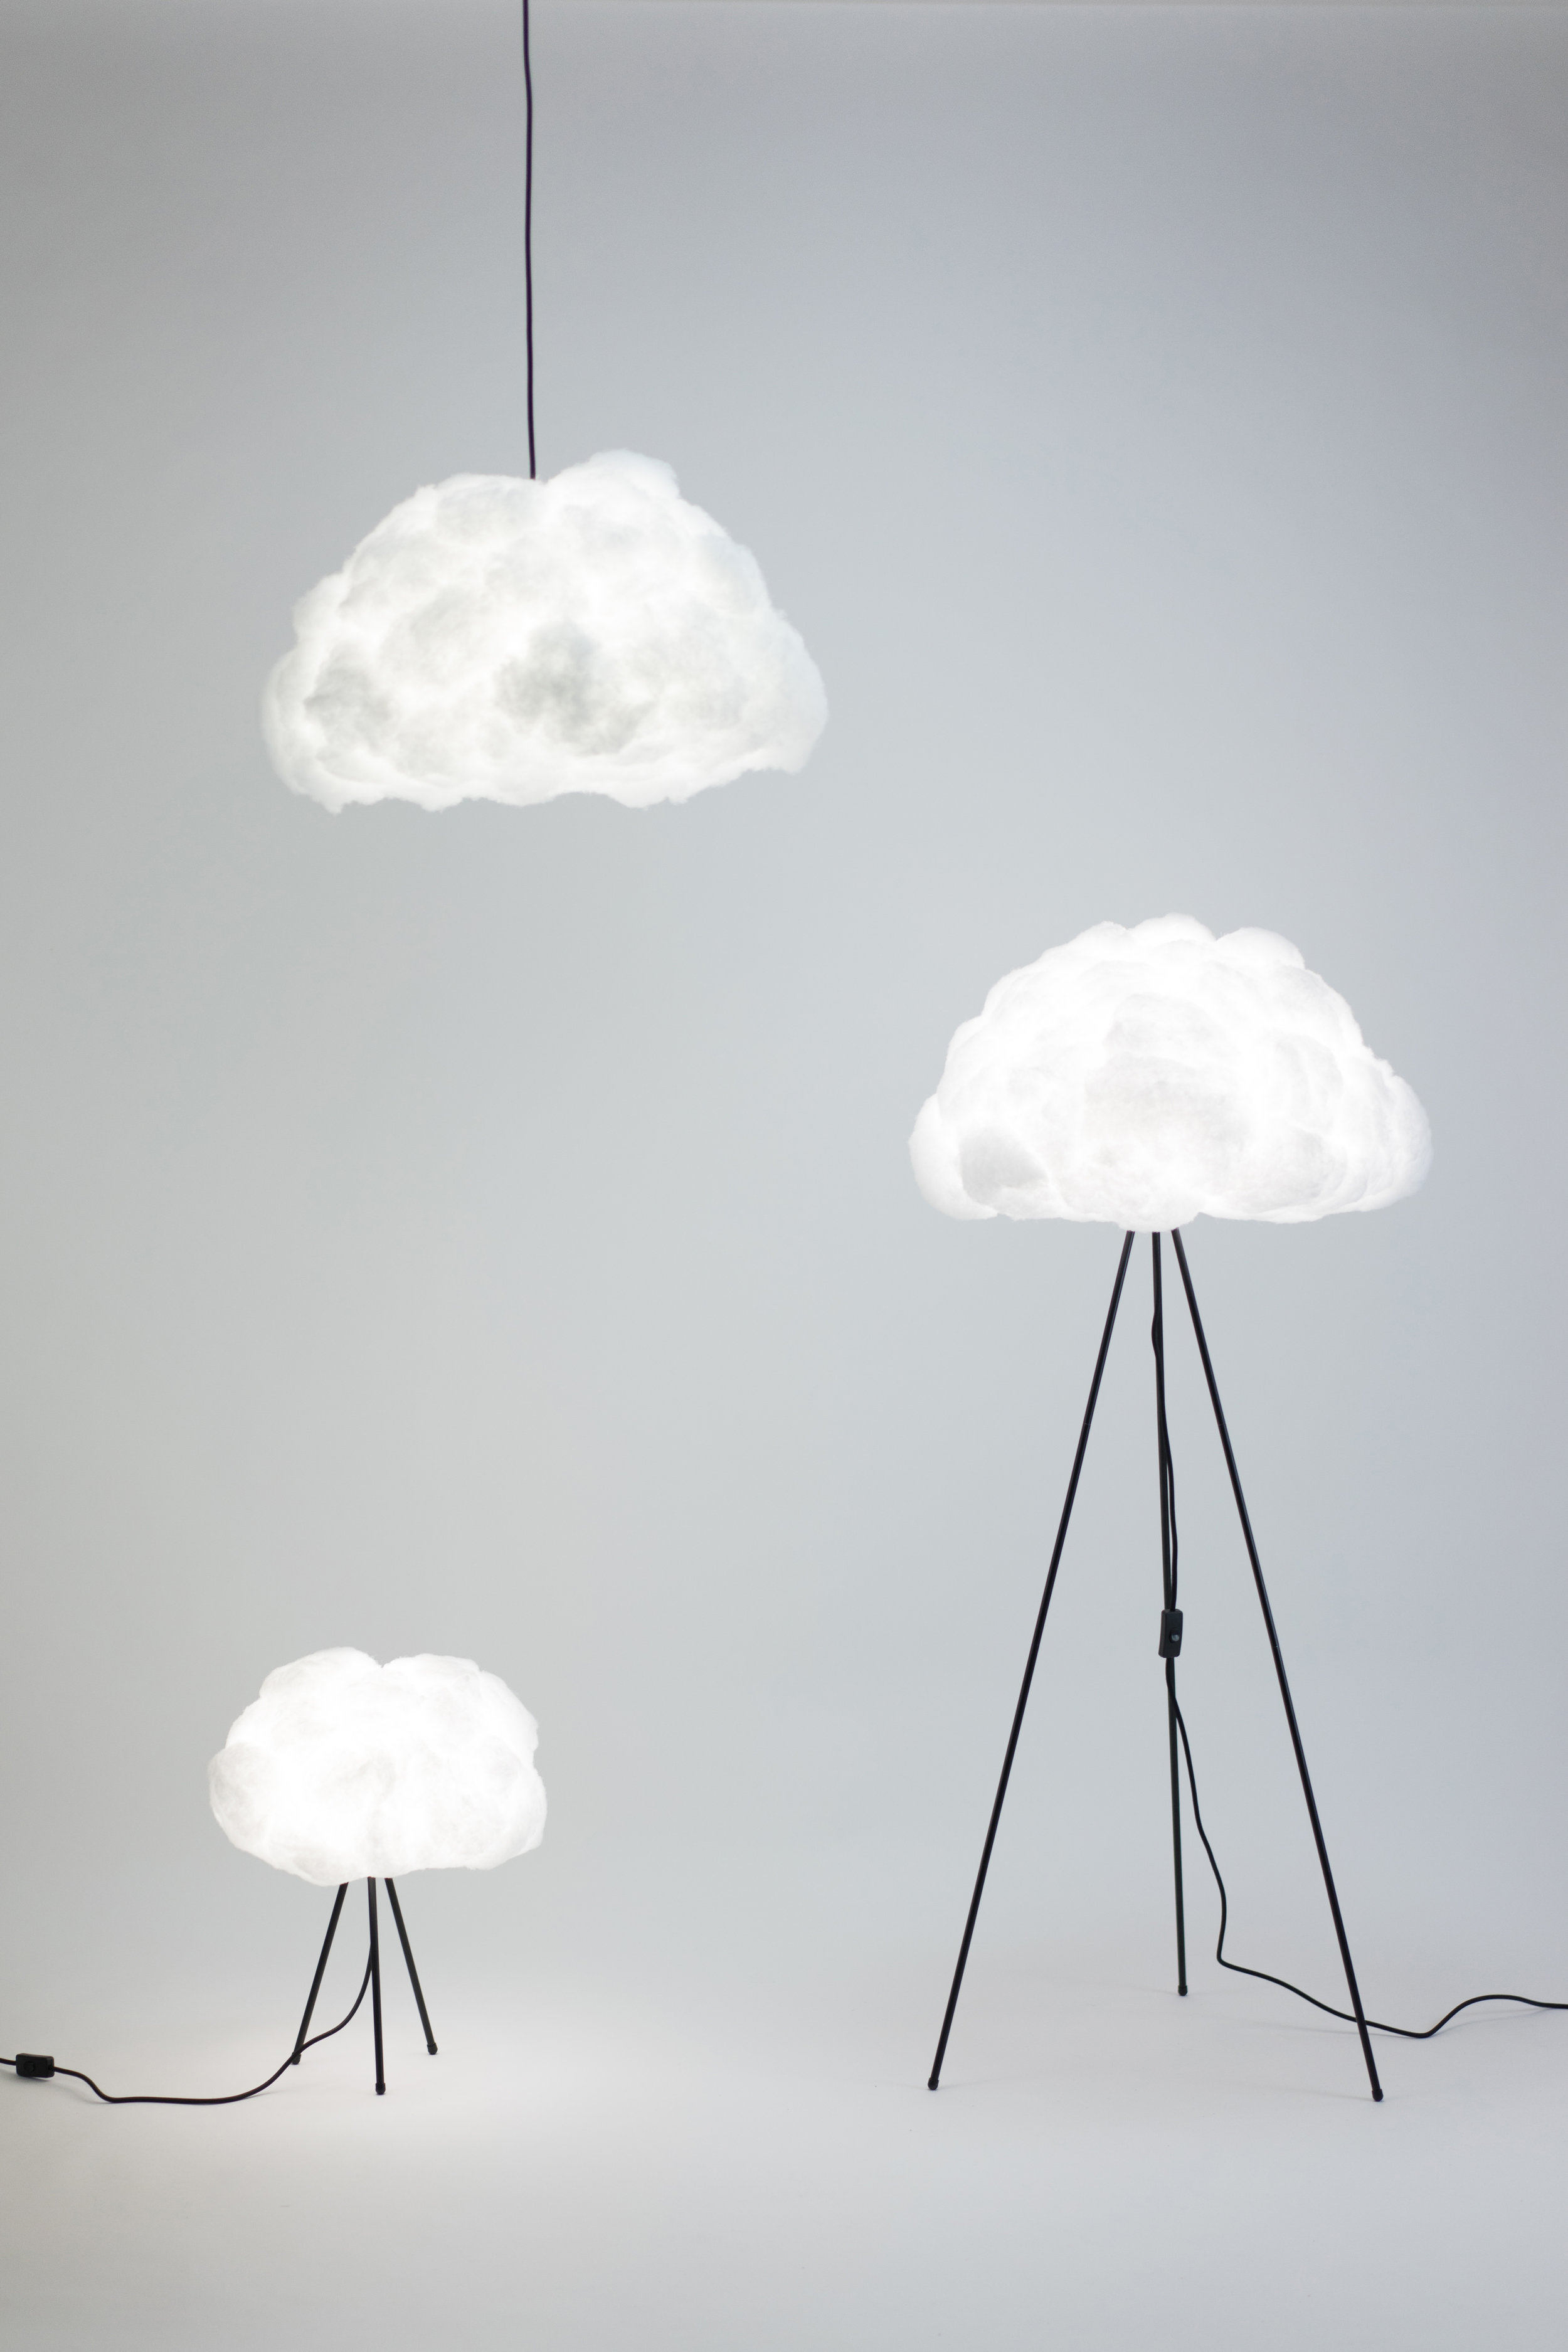 Jun 9 2014 lighting clouds L& Shade with Bulb richard clarkson Comment & cloud. + rc. azcodes.com